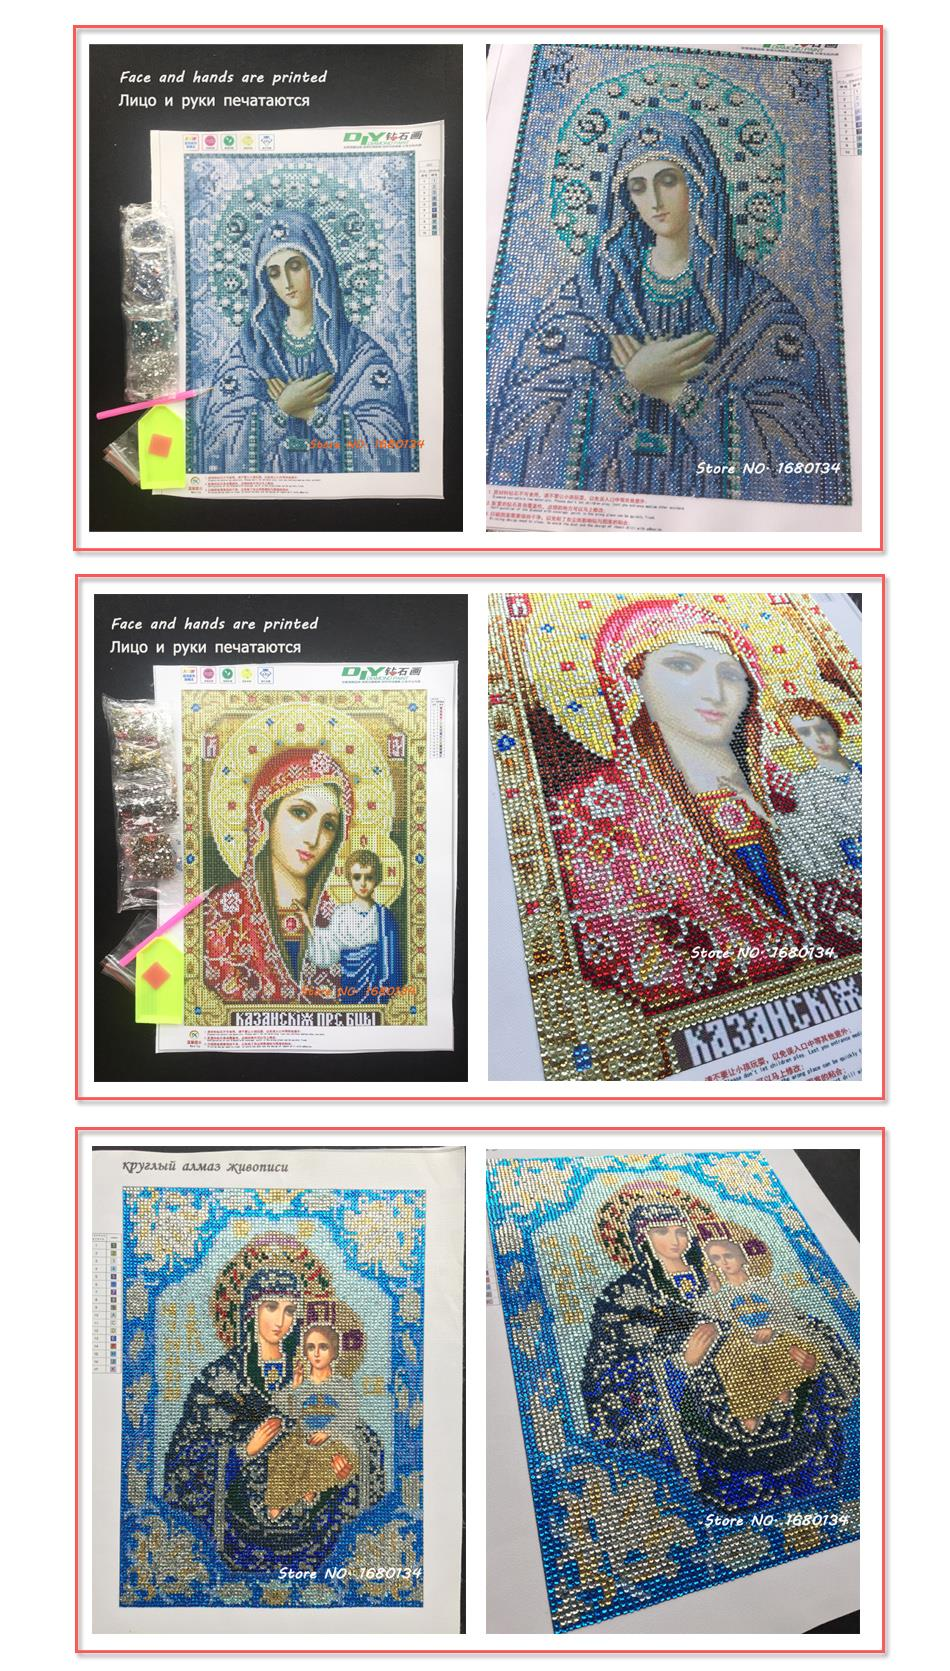 DIY 5D Partial Pasting Area diamond embroidery religions religious Icons diamond painting cross stitch 3D round crystal Patterns rhinestones needlework face and hands printed mosaic